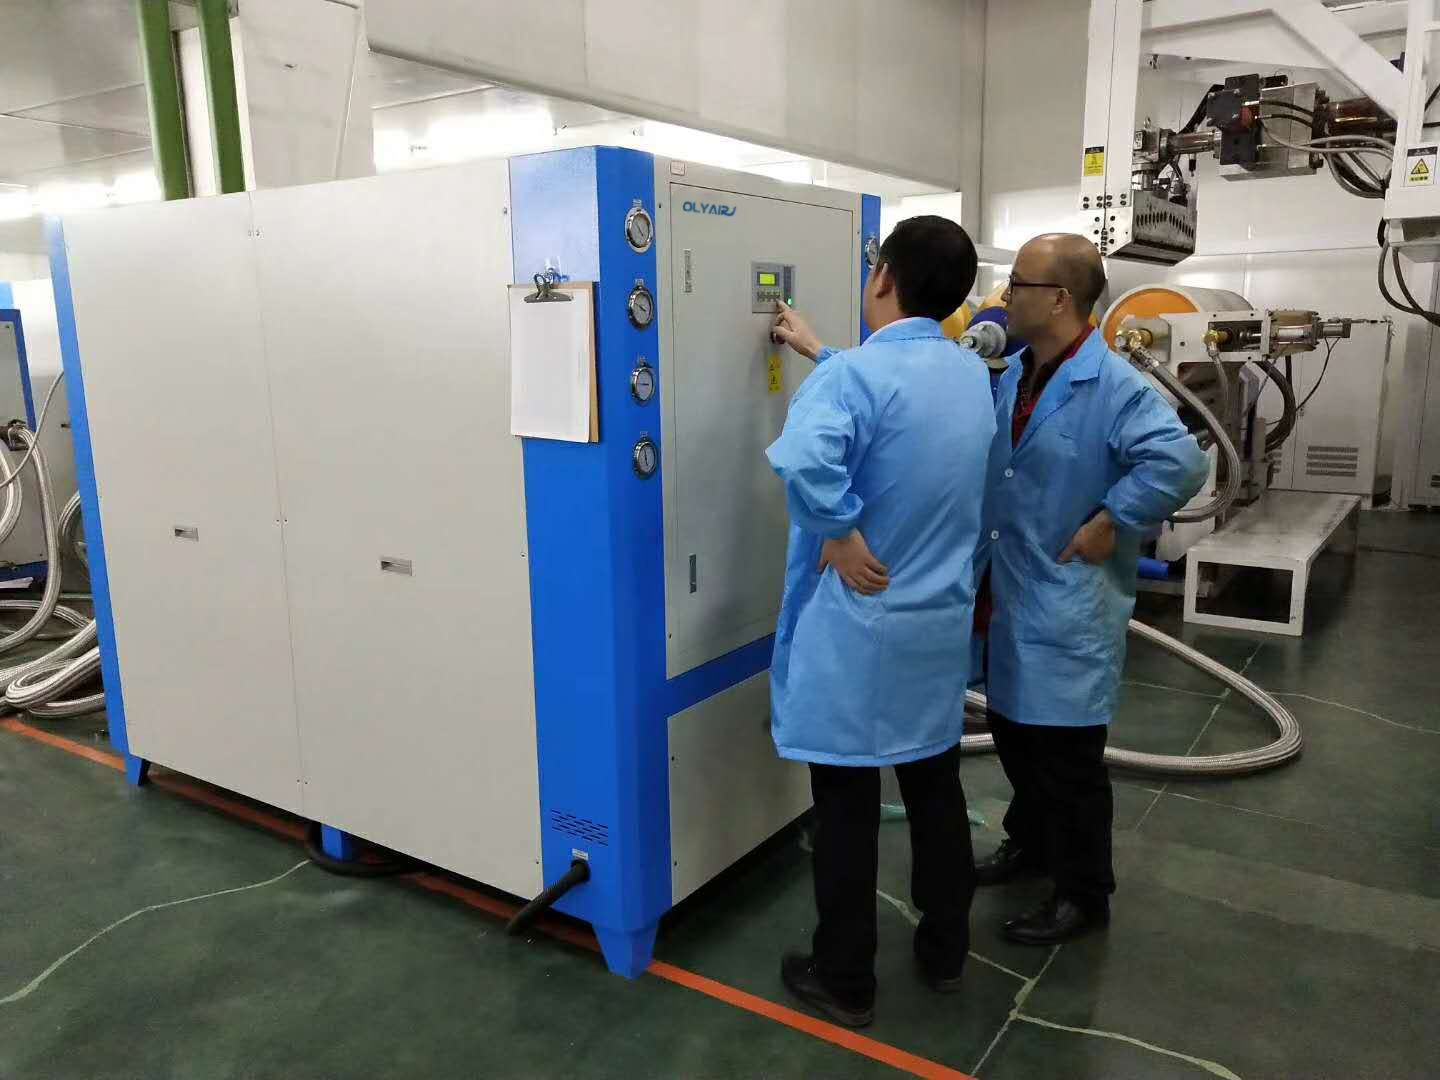 Olyair industrial air conditioner including water cooled